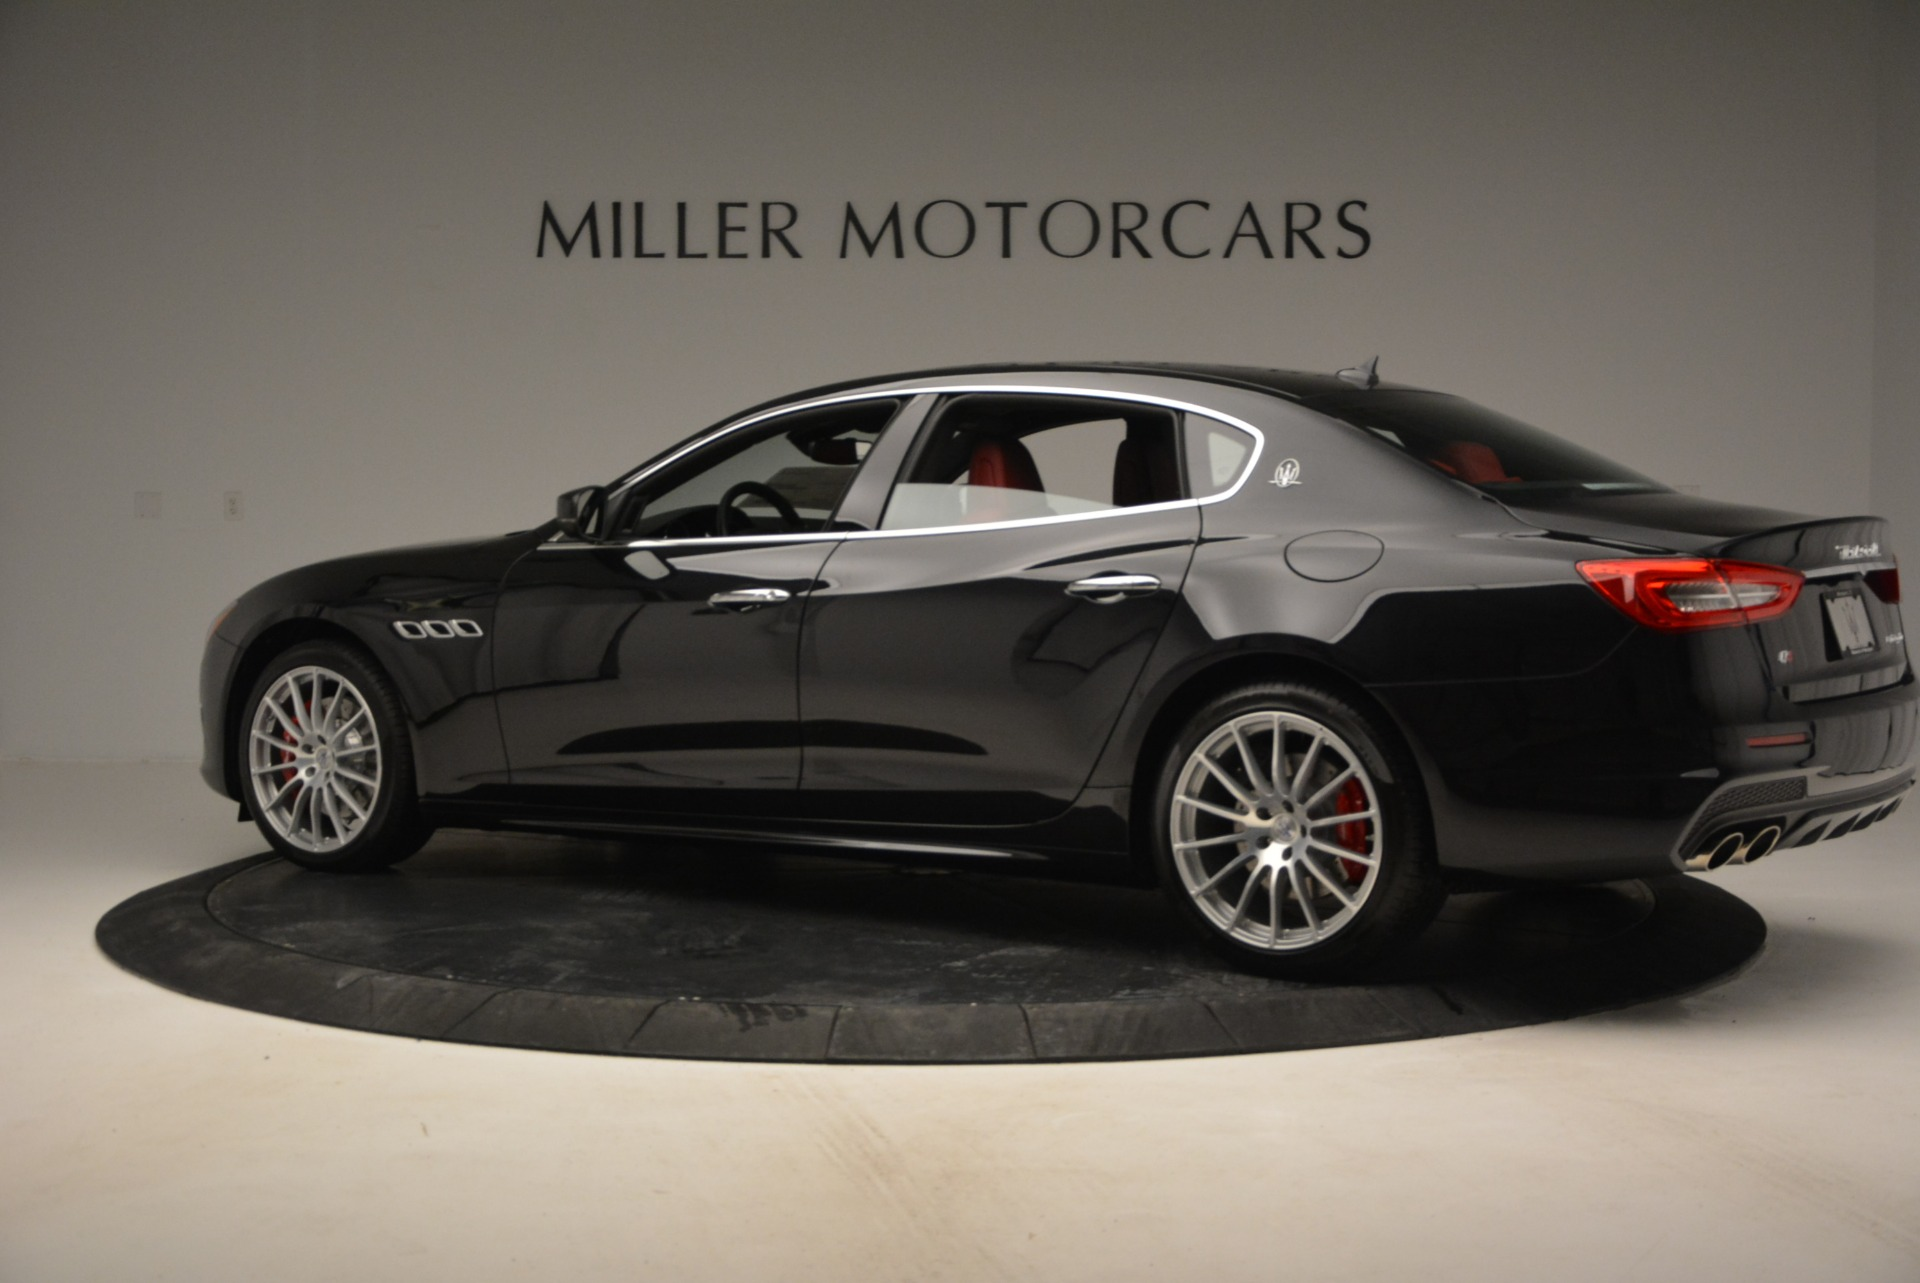 New 2017 Maserati Quattroporte S Q4 GranSport For Sale In Westport, CT 790_p4